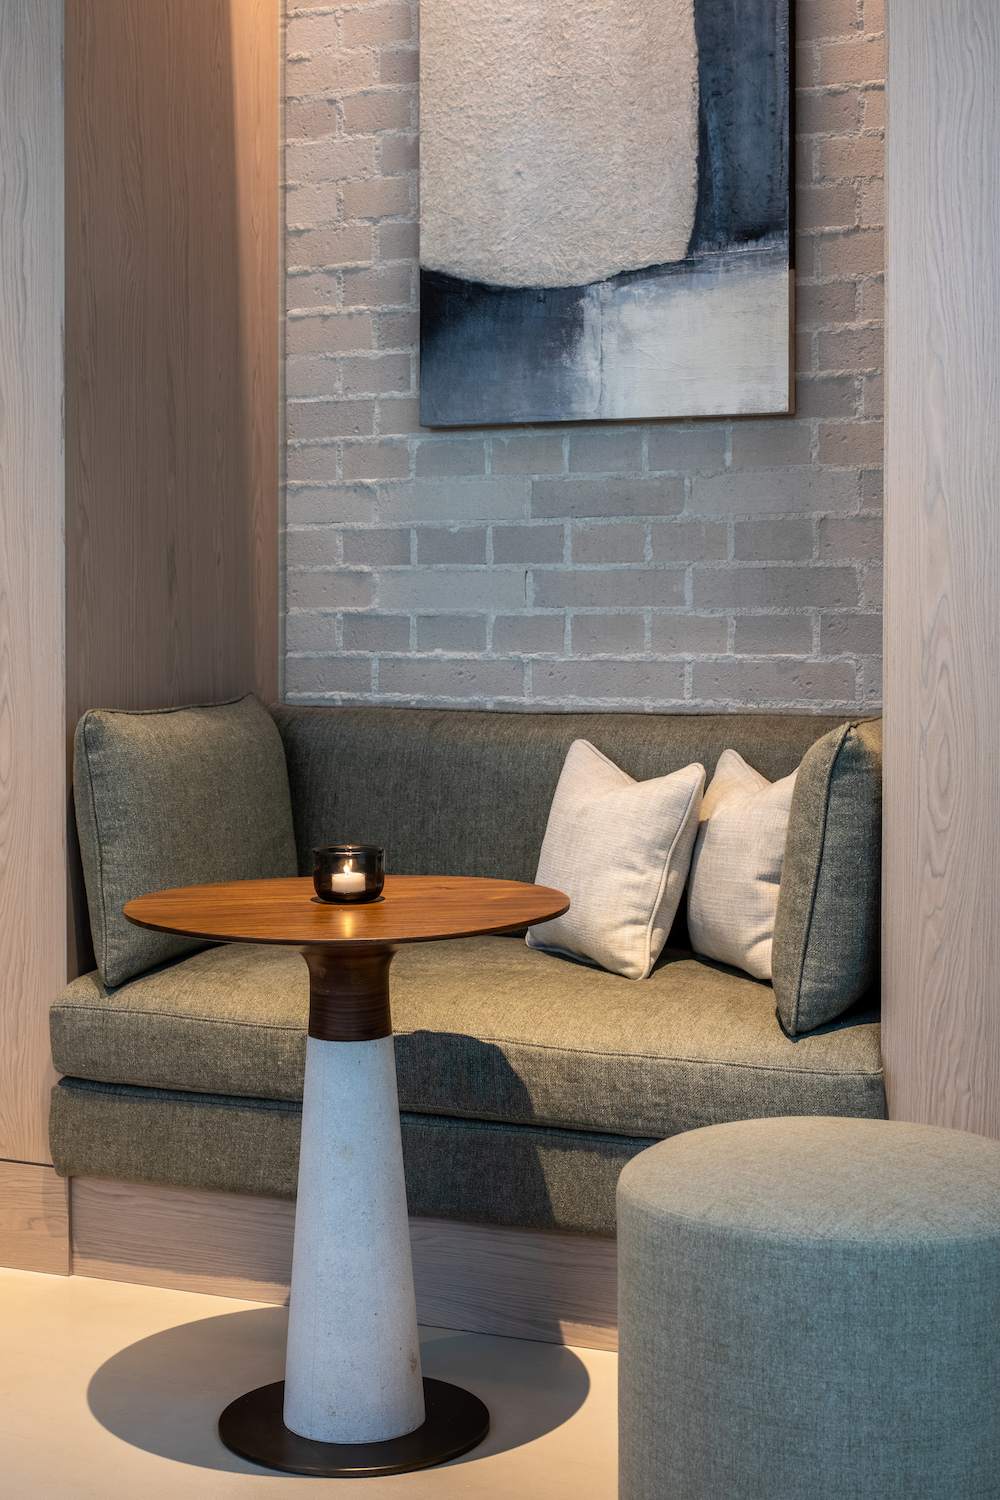 A booth seating in the lounge of a hotel